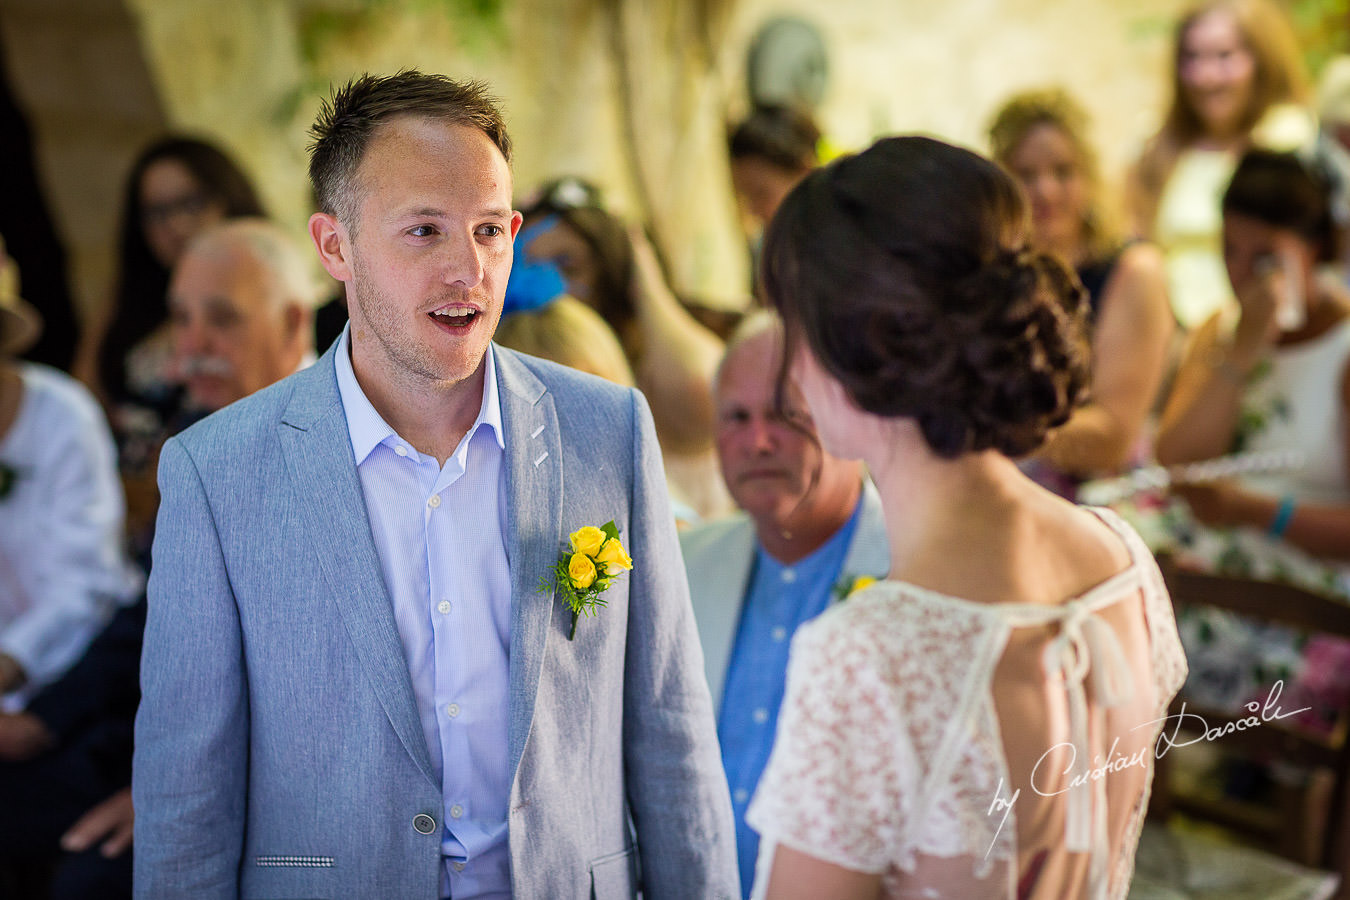 A beautiful wedding day at the Vasilias Nikoklis Inn in Paphos, captured by Cristian Dascalu. Ceremony moments.